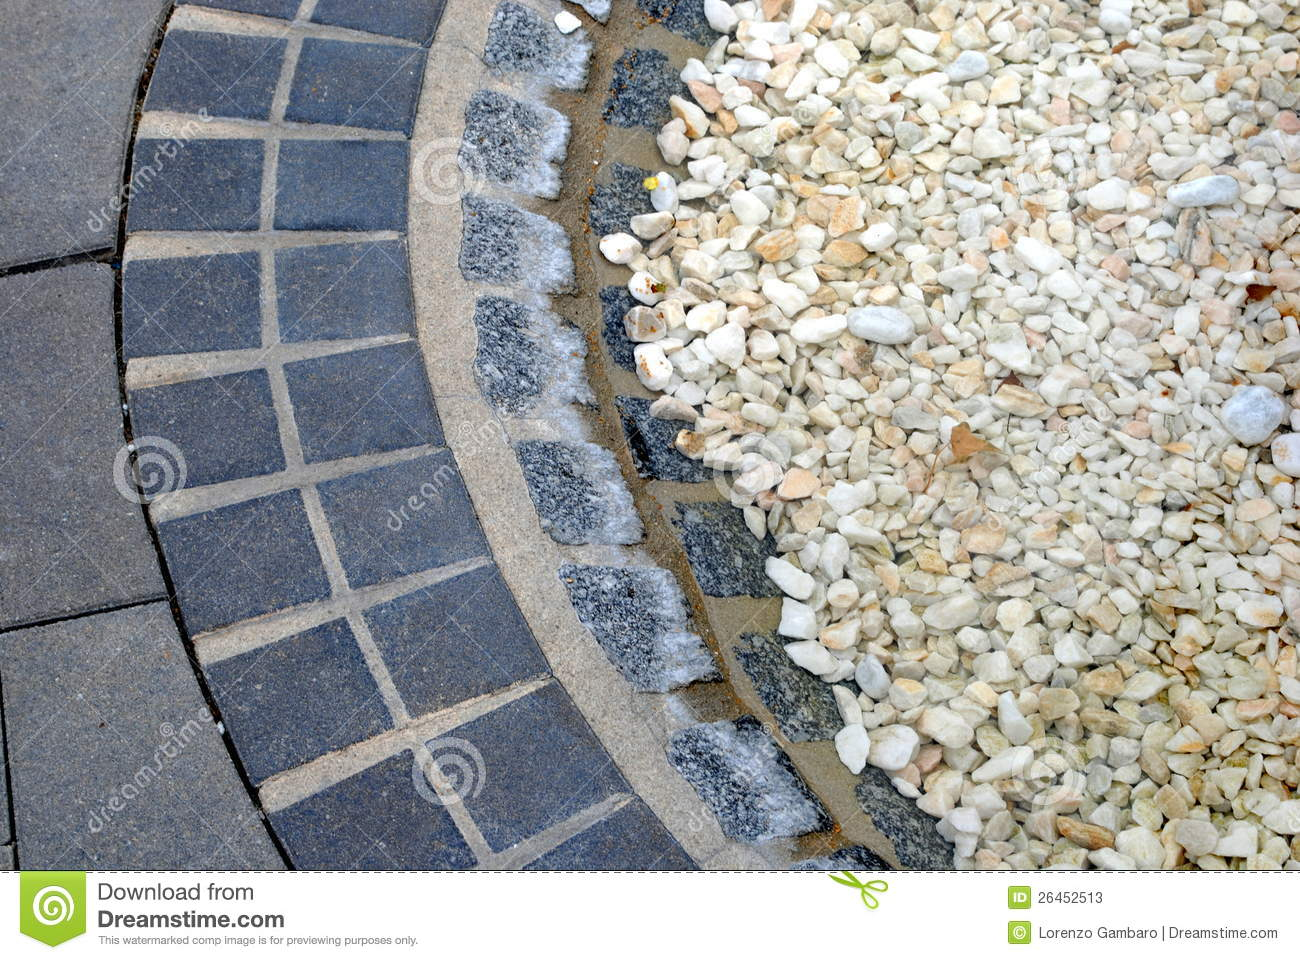 Stunning Flower_Bed_Rock_Borders http://.dreamstime.com/stock-photos-flower  1300 x 960 · 242 kB · jpeg